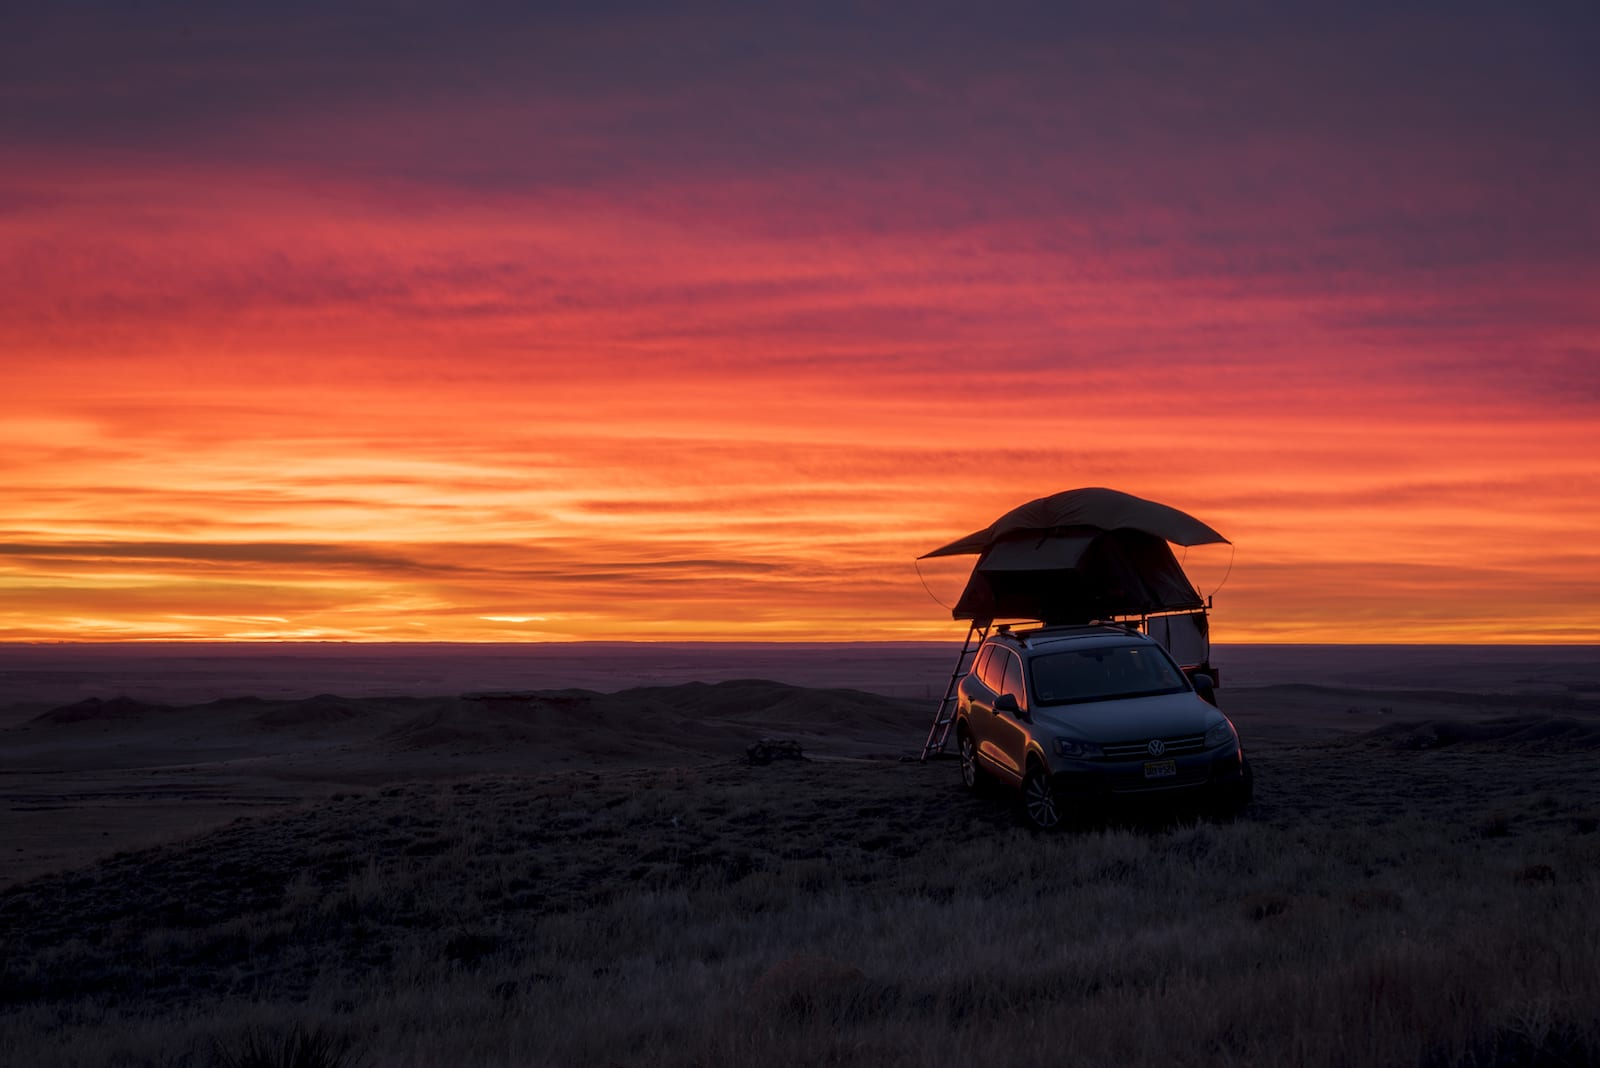 Rooftop Tent Camping in Pawnee National Grasslands at Sunrise